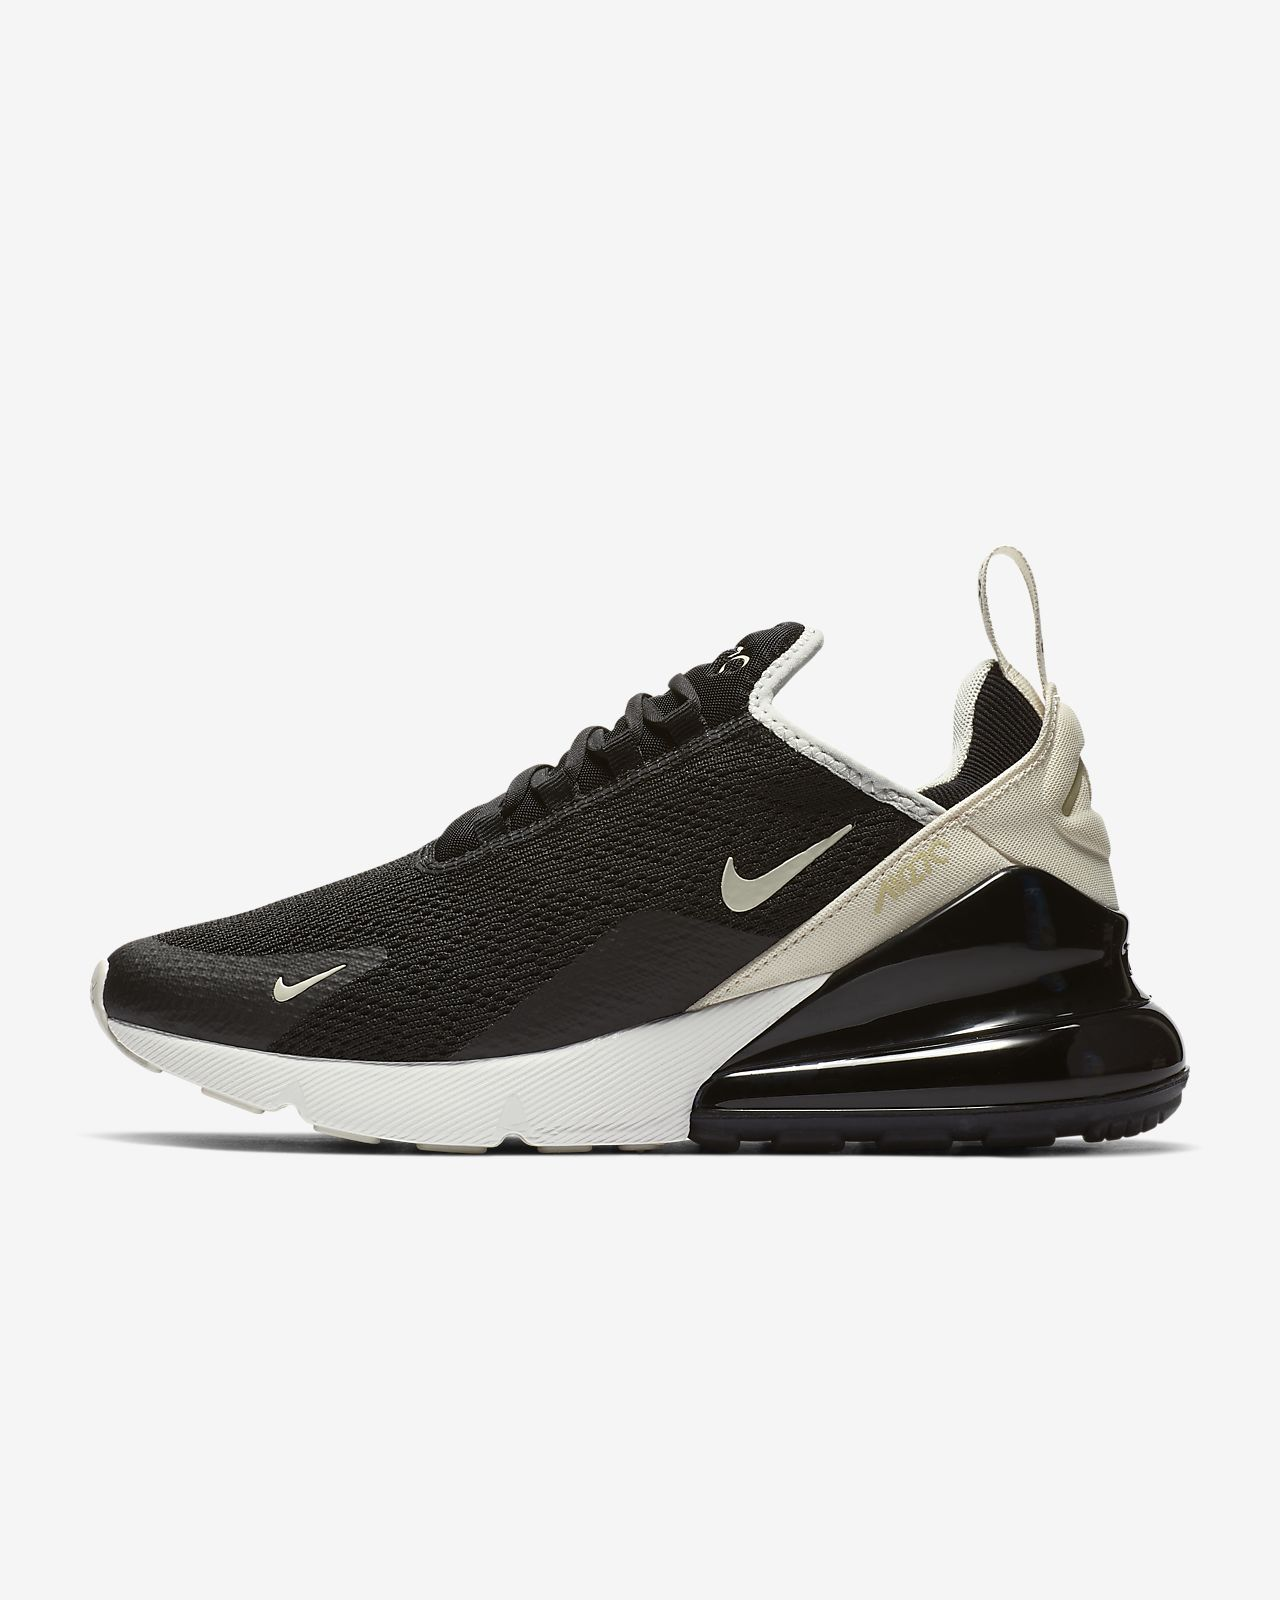 a3361c849be53 Nike Air Max 270 Women s Shoe. Nike.com NZ